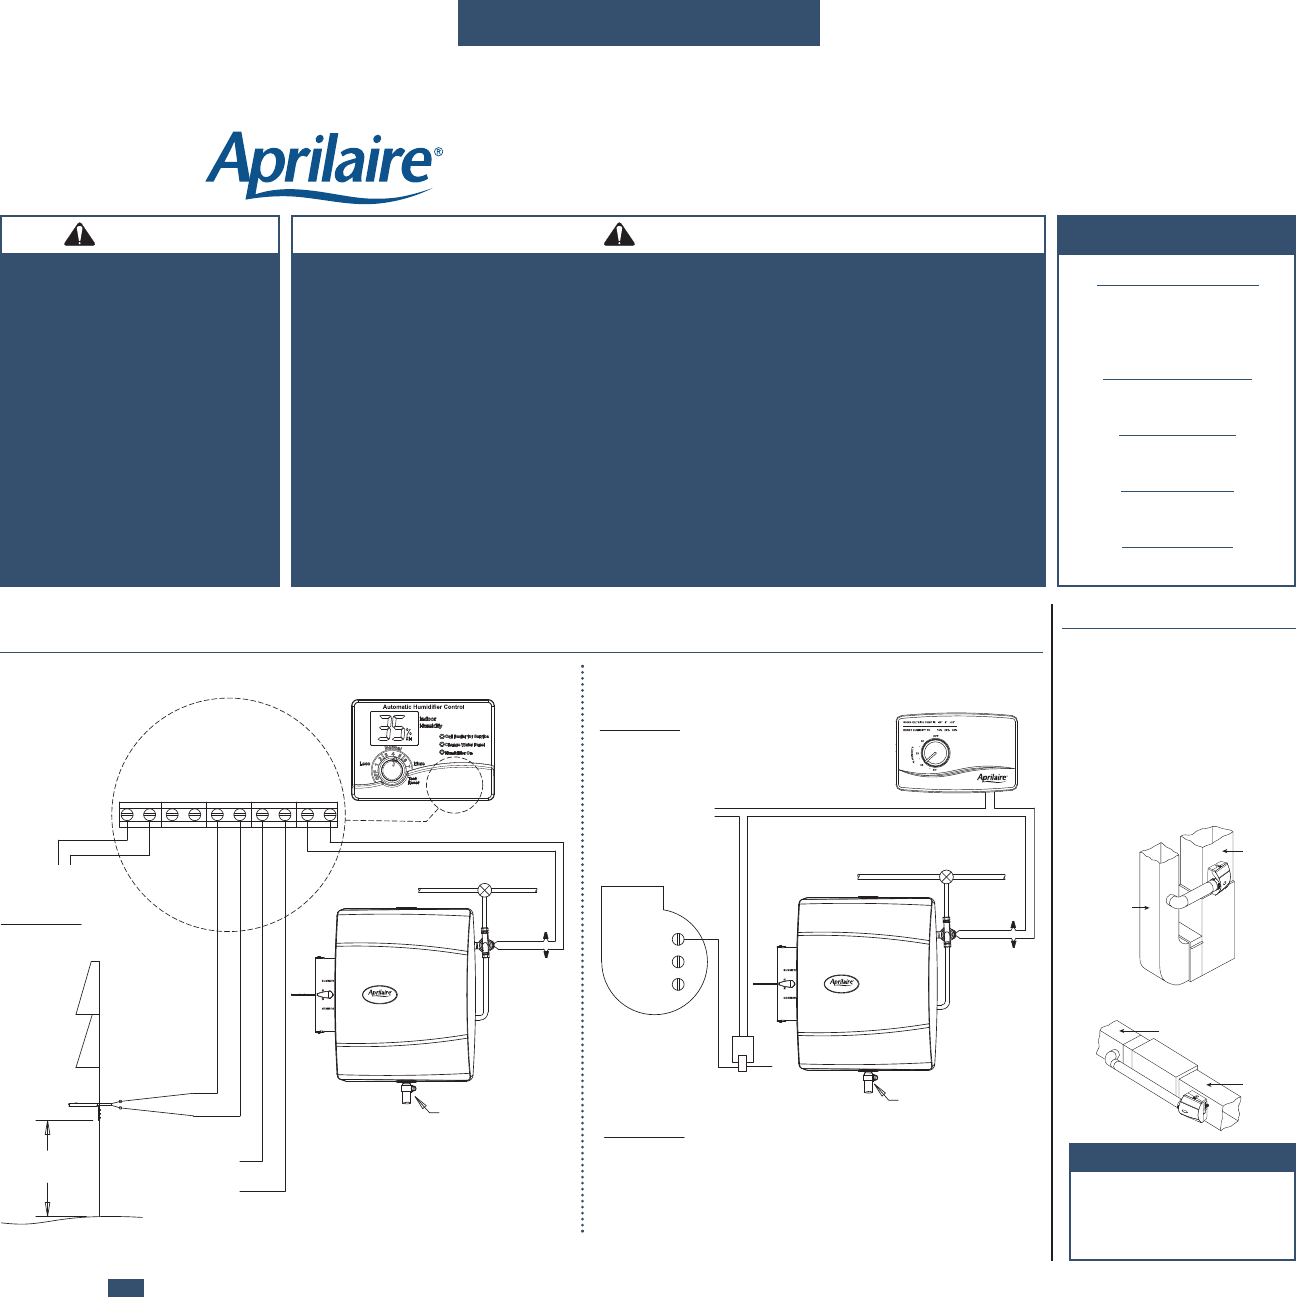 wiring diagram for aprilaire humidifier explained wiring diagrams rh  dmdelectro co